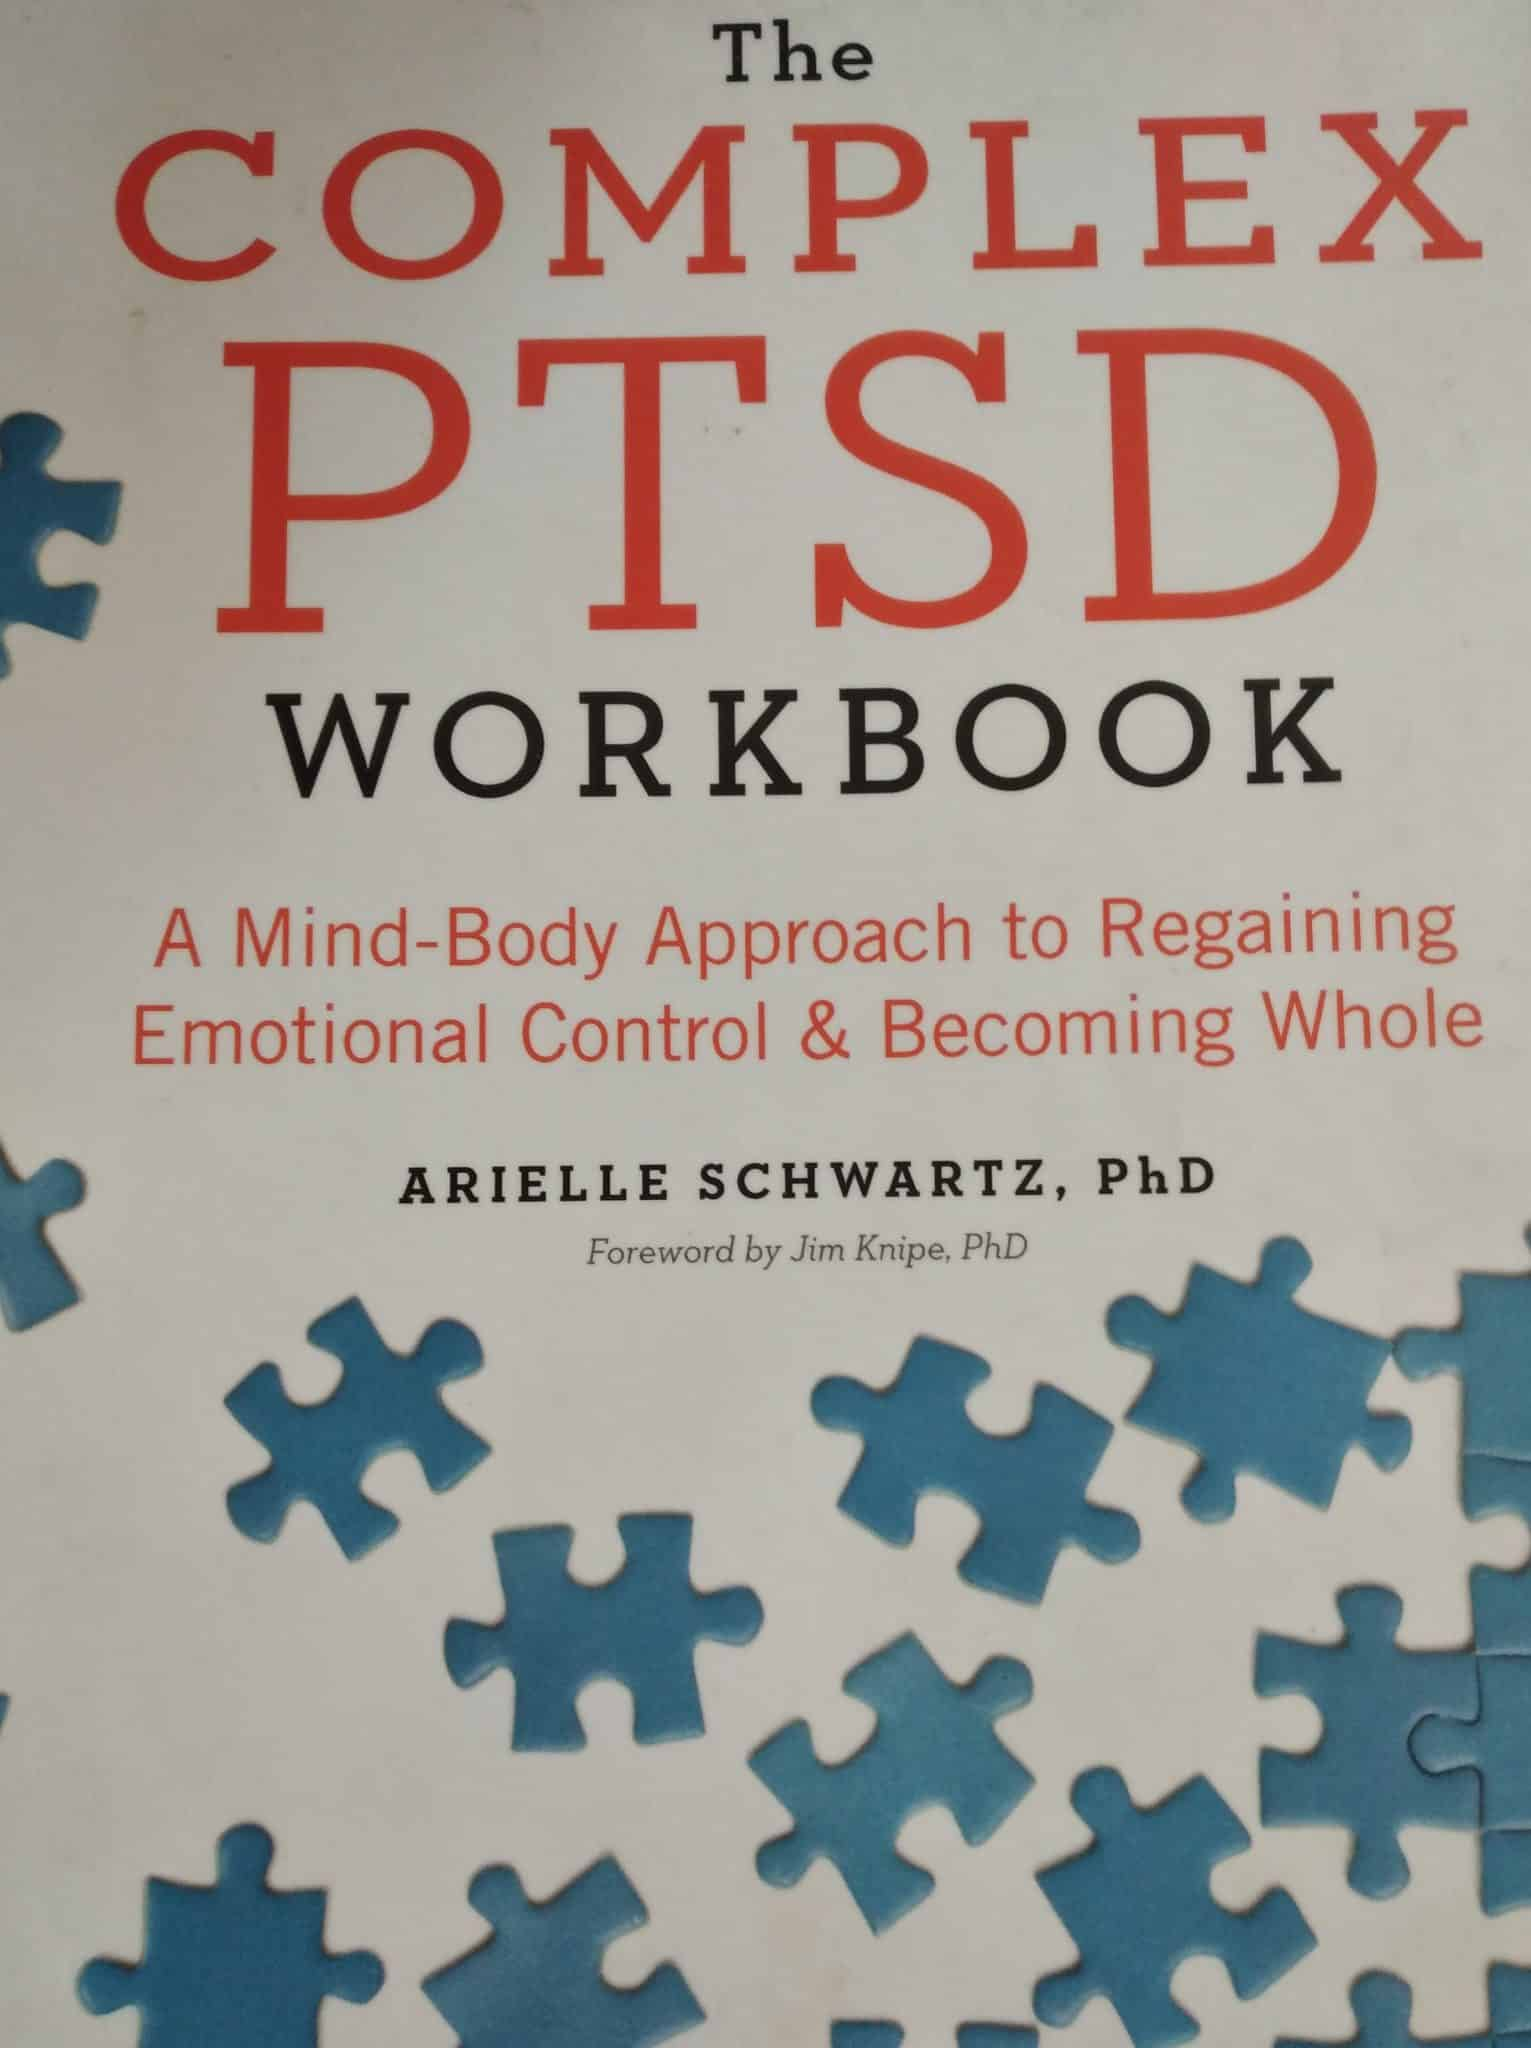 The Complex PTSD Workbook. A Mind-Body Approach To Regaining Emotional Control & Becoming Whole